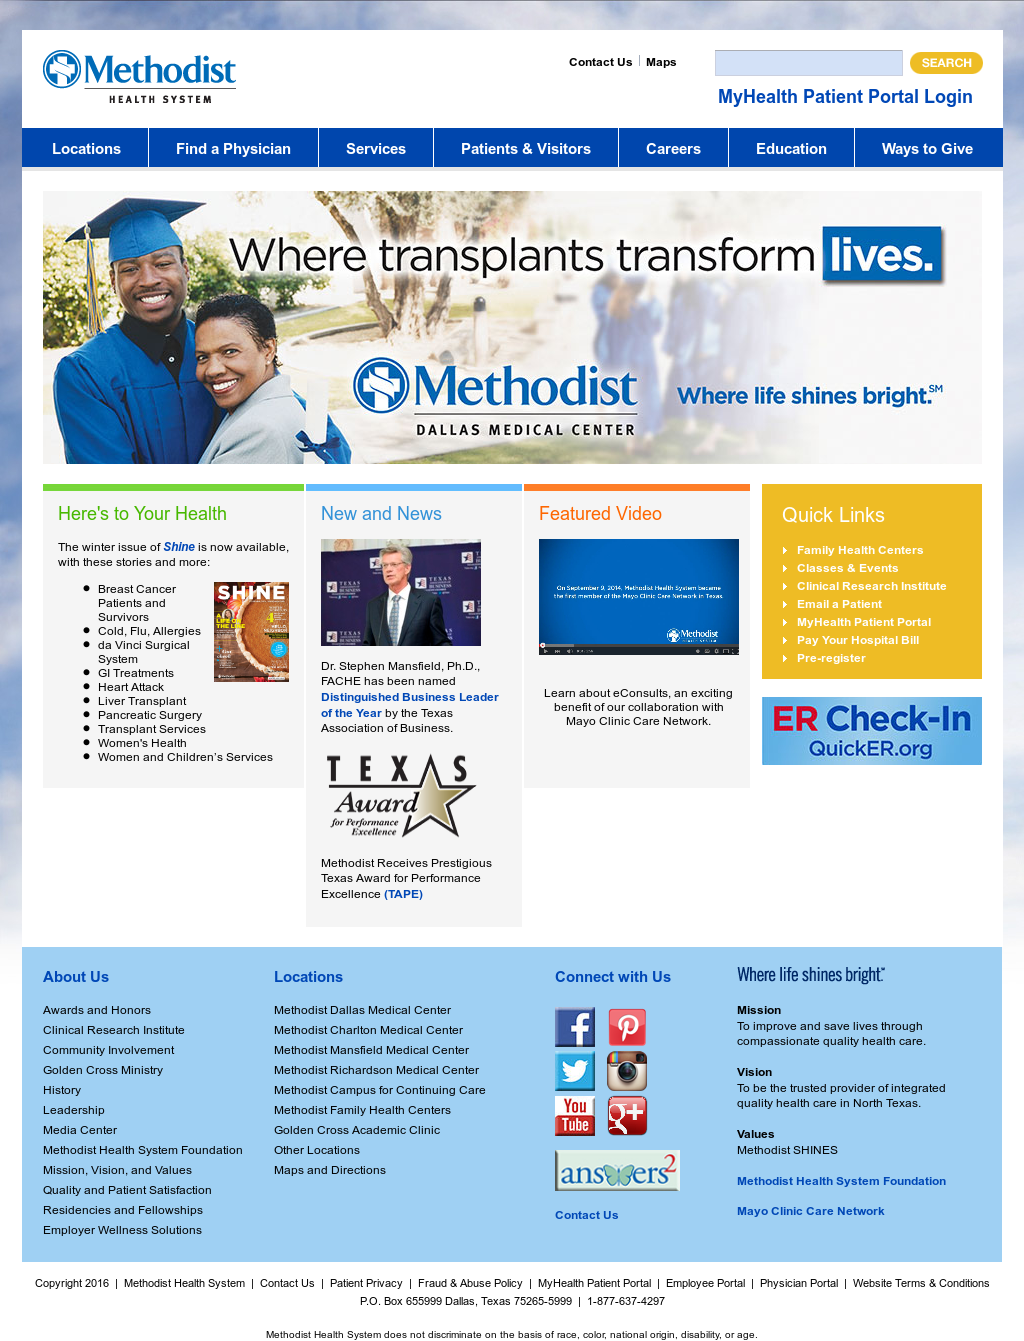 methodist dallas employee portal Why Is Everyone Talking